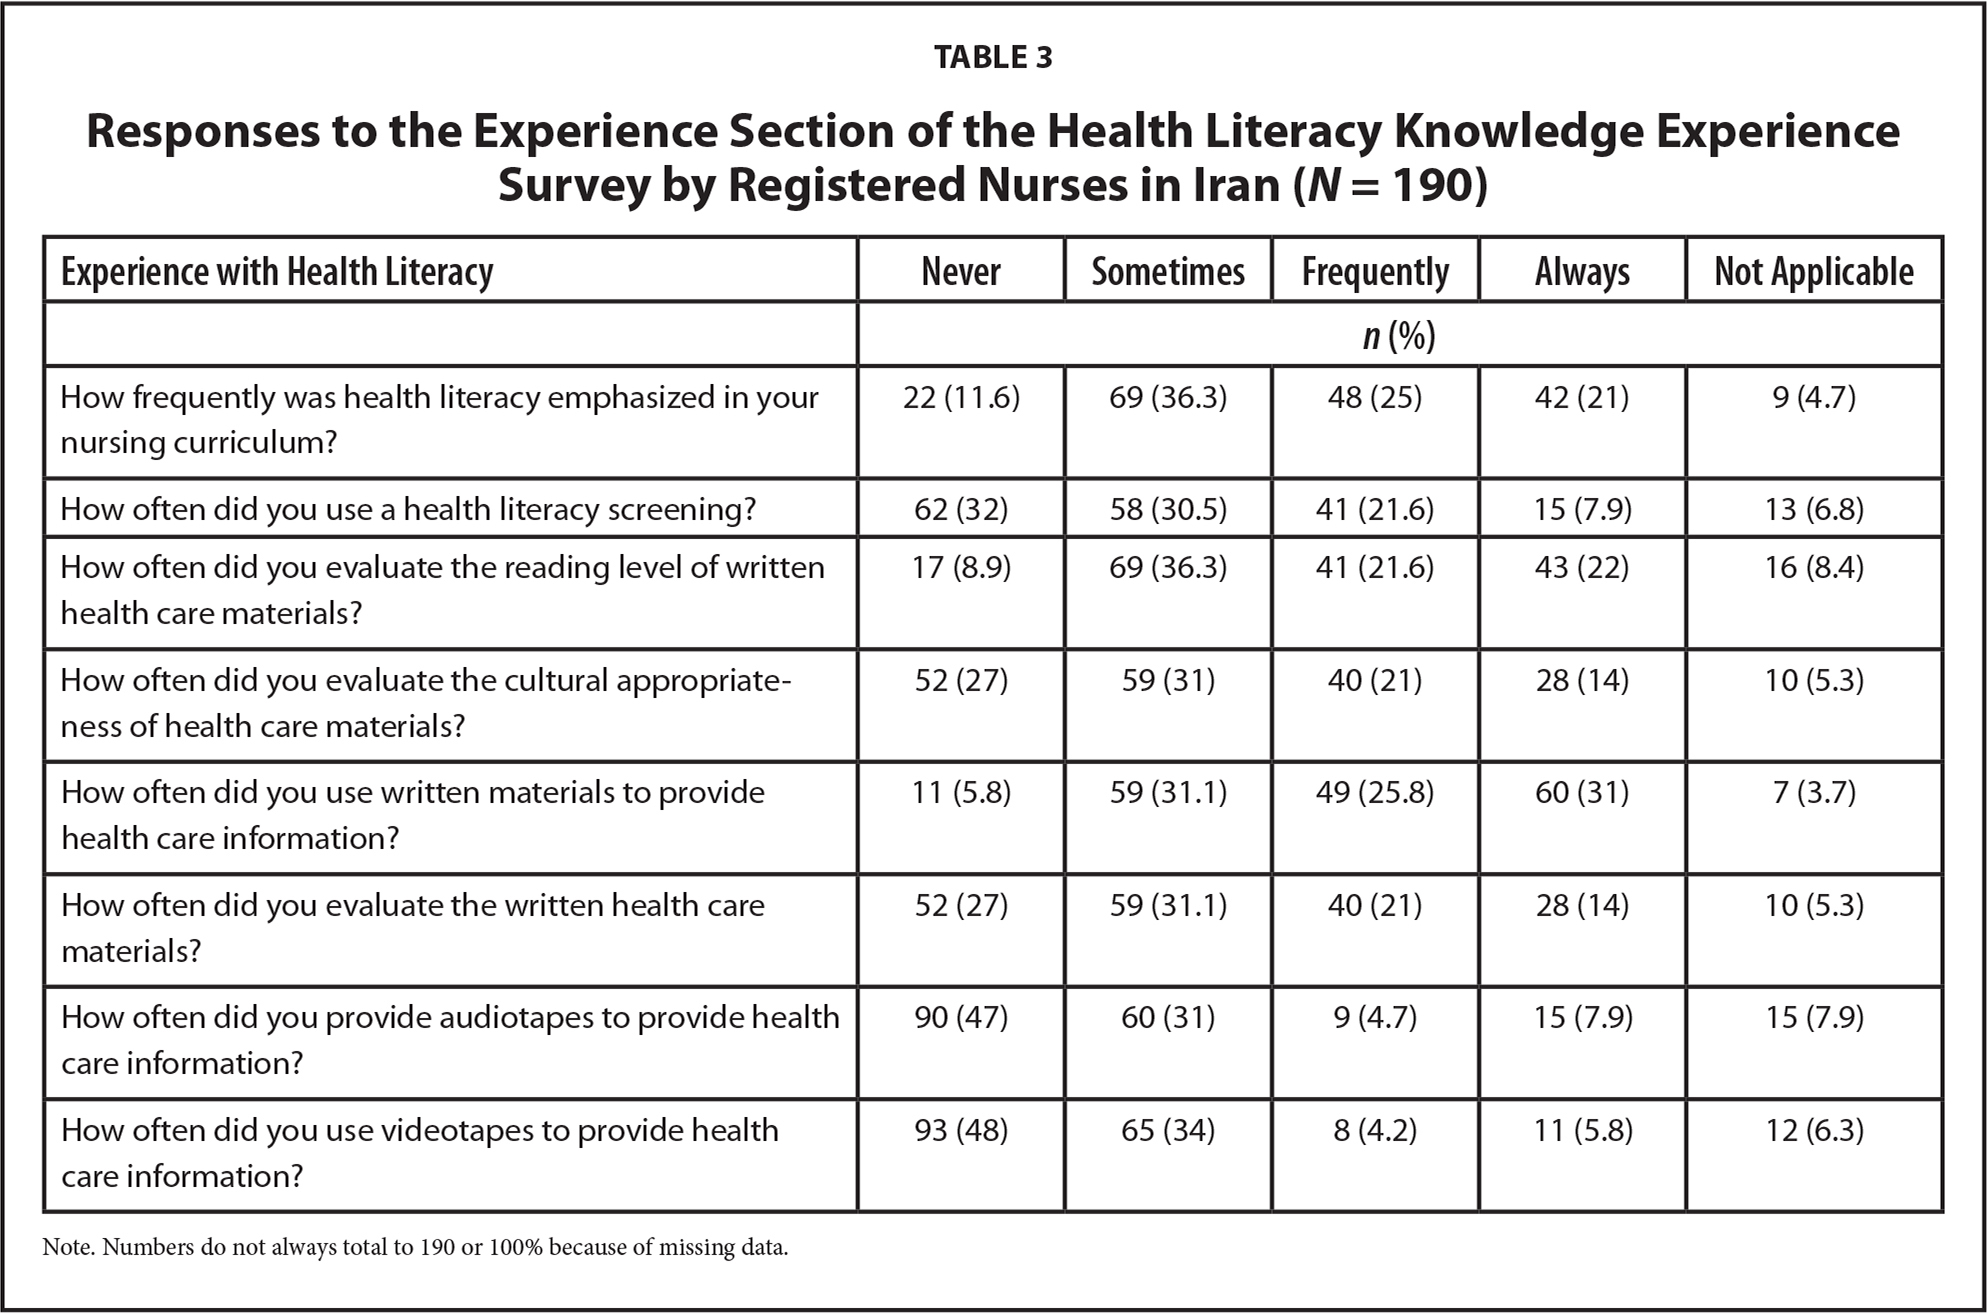 Responses to the Experience Section of the Health Literacy Knowledge Experience Survey by Registered Nurses in Iran (N = 190)